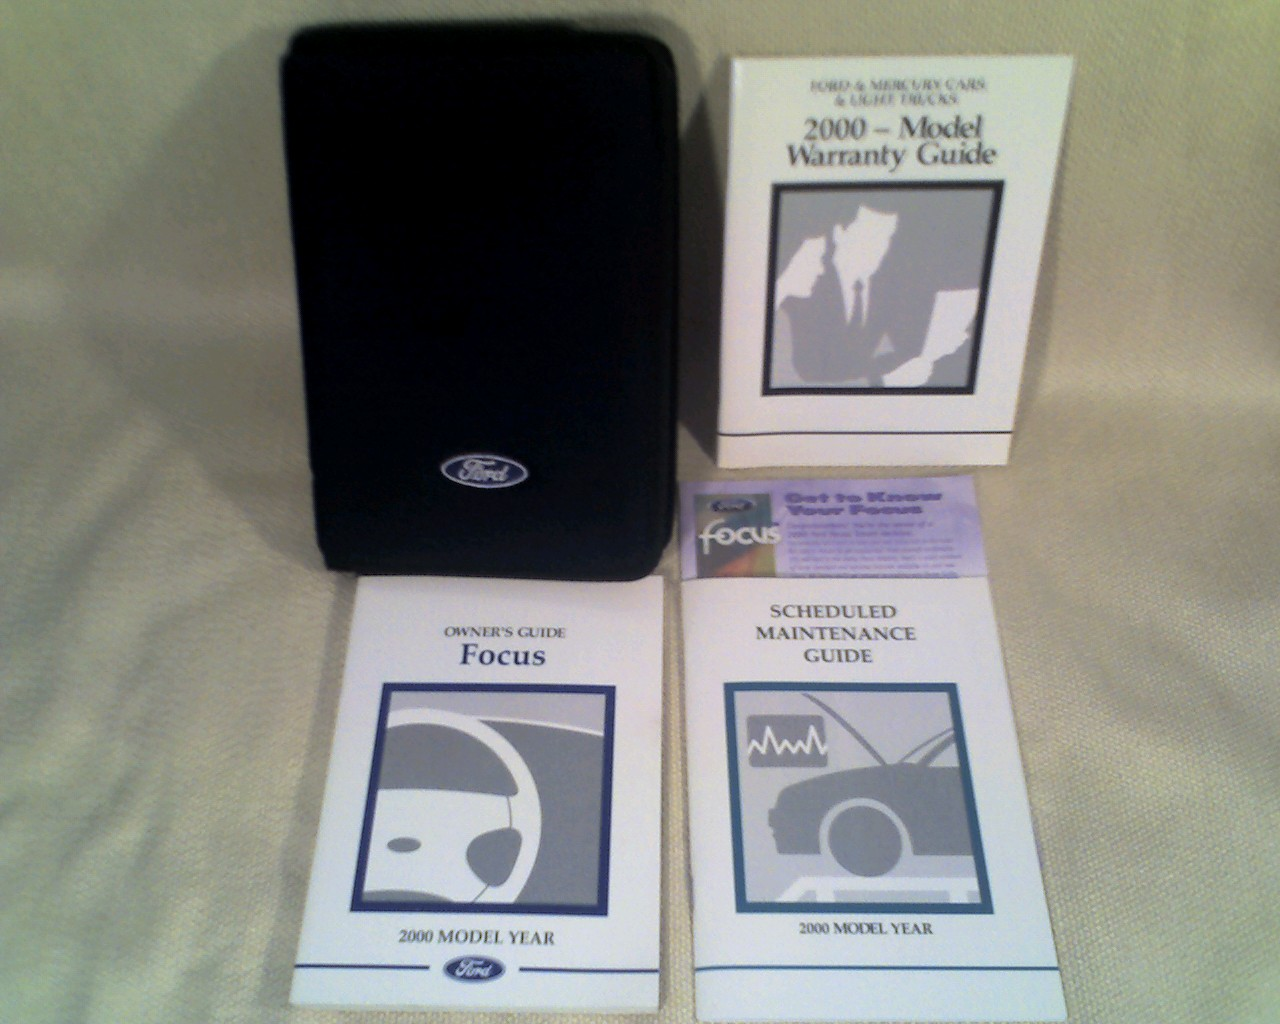 hight resolution of 2000 ford focus owners guide warranty guide scheduled maintenance guide